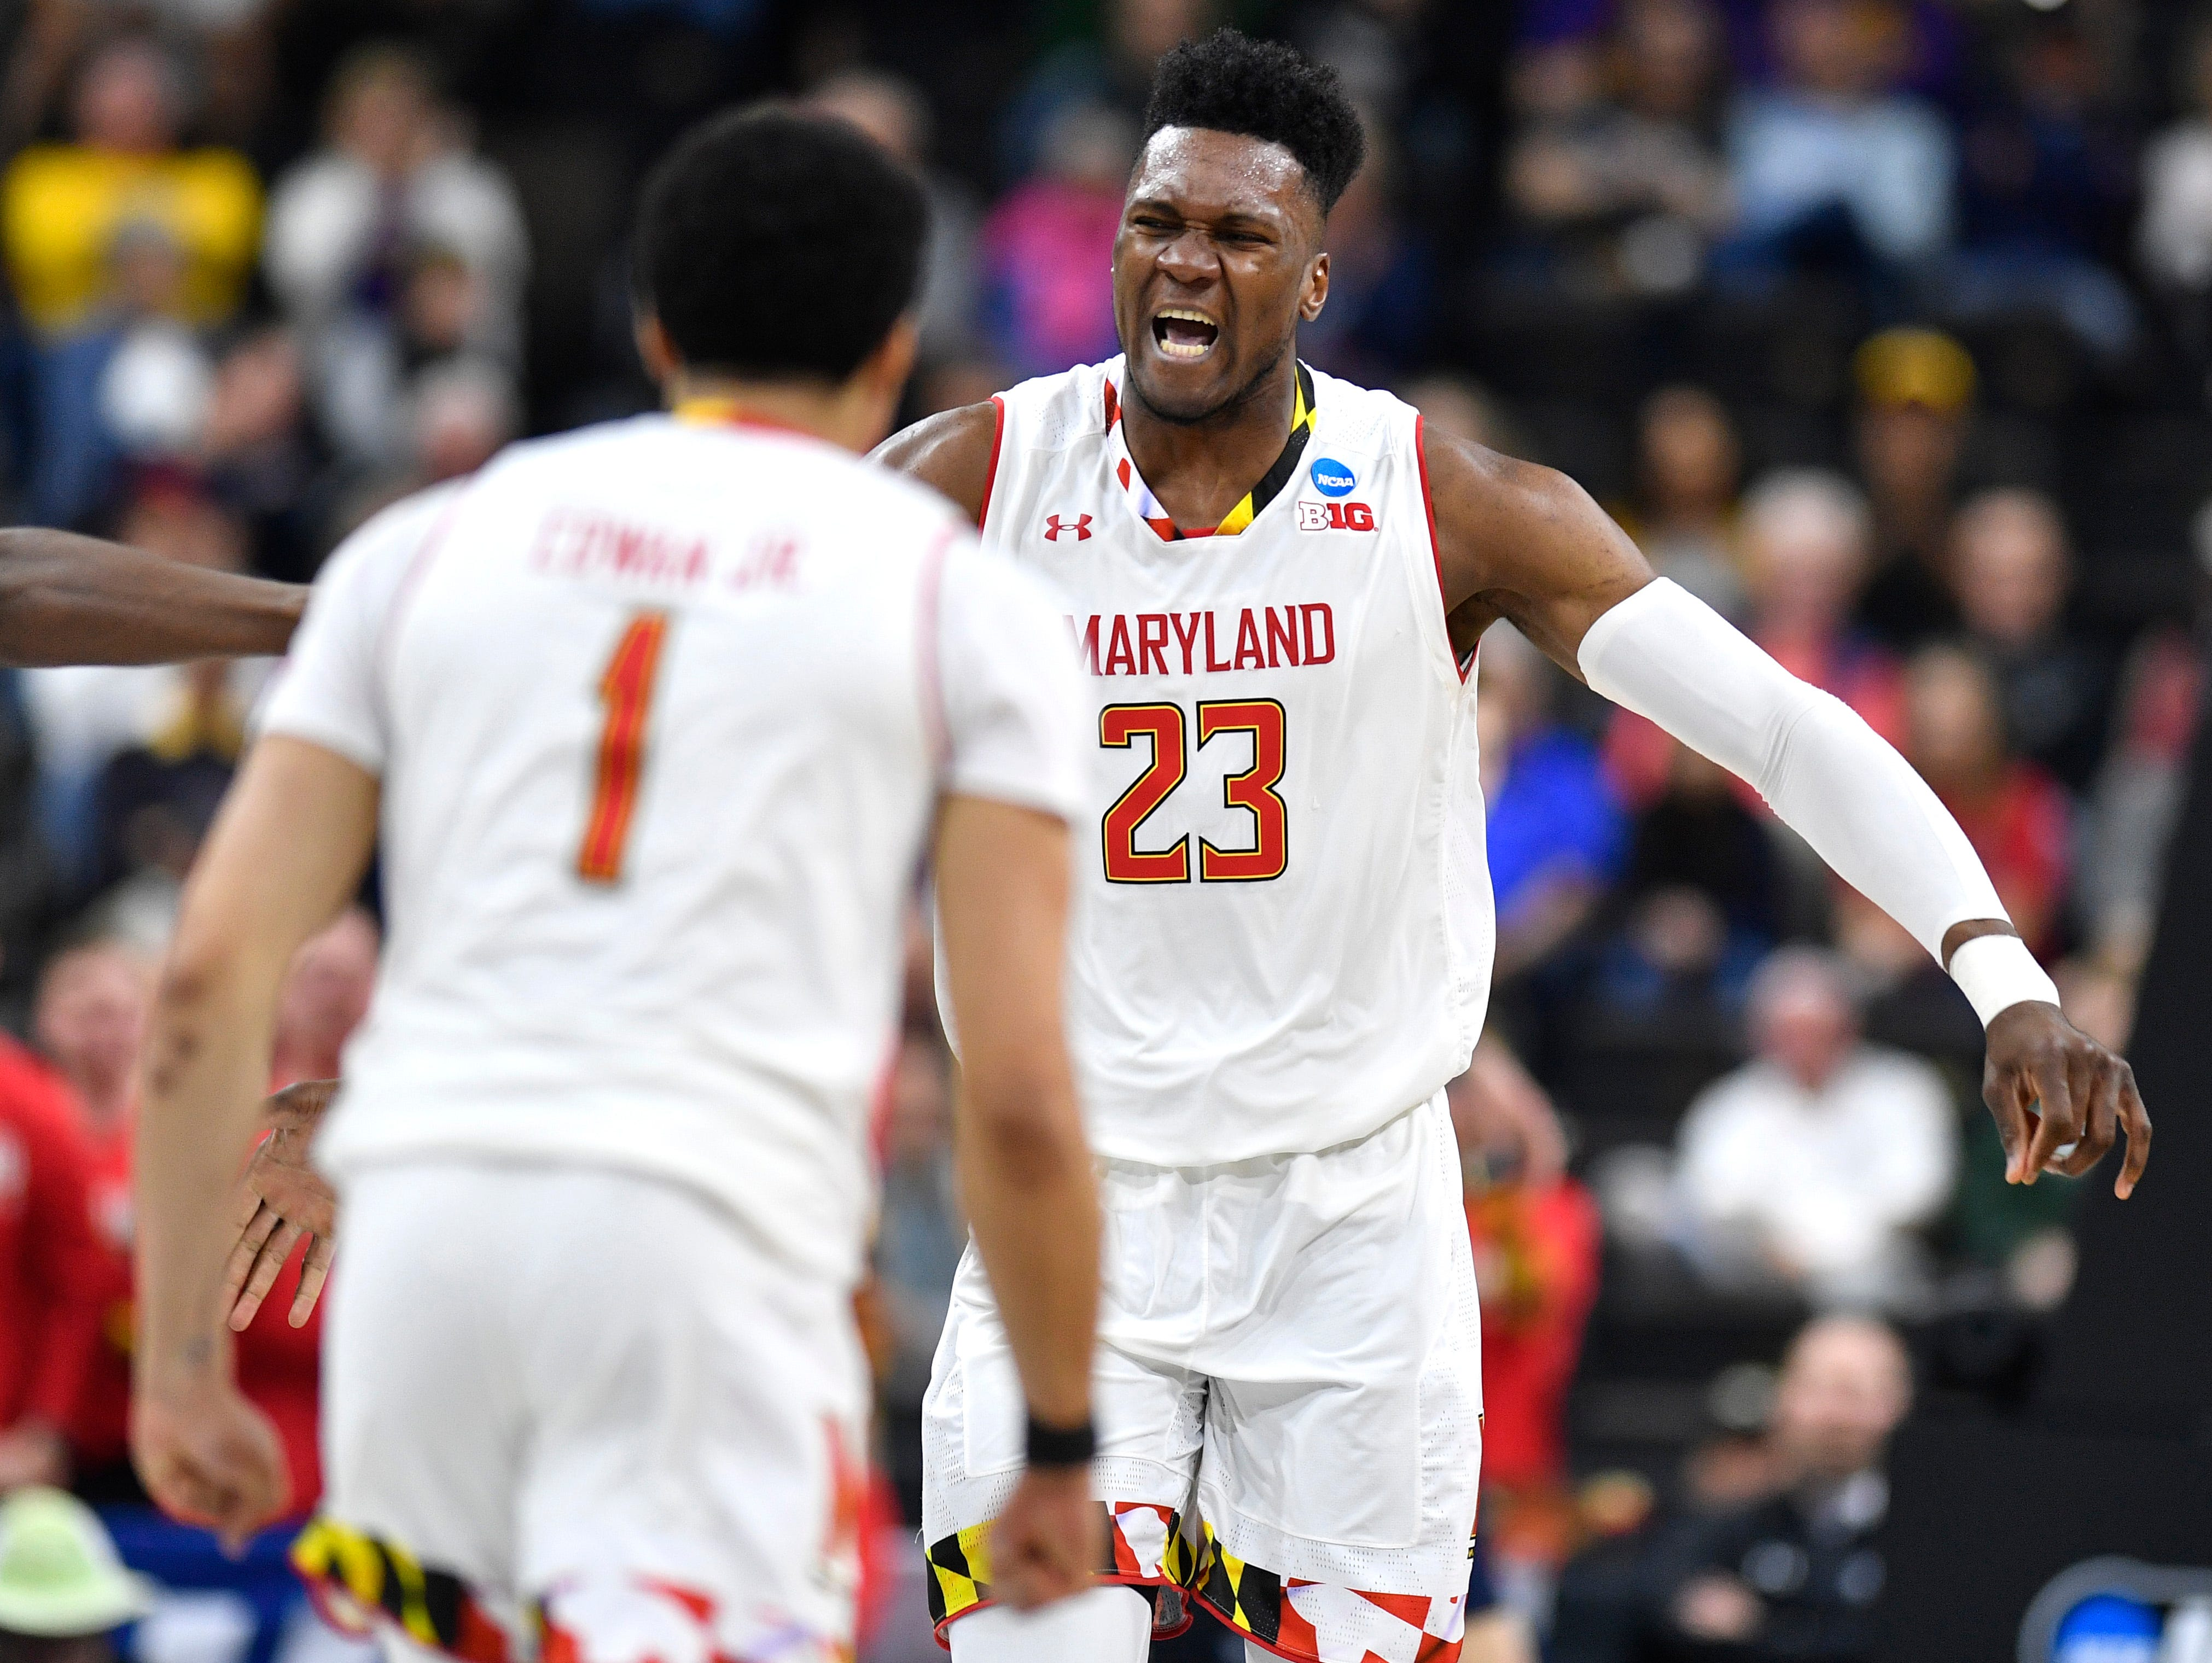 Maryland forward Bruno Fernando (23) reacts to scoring during the second half of the first-round NCAA college basketball tournament game at VyStar Veterans Memorial Arena in Jacksonville, Fla., Thursday, March 21, 2019.